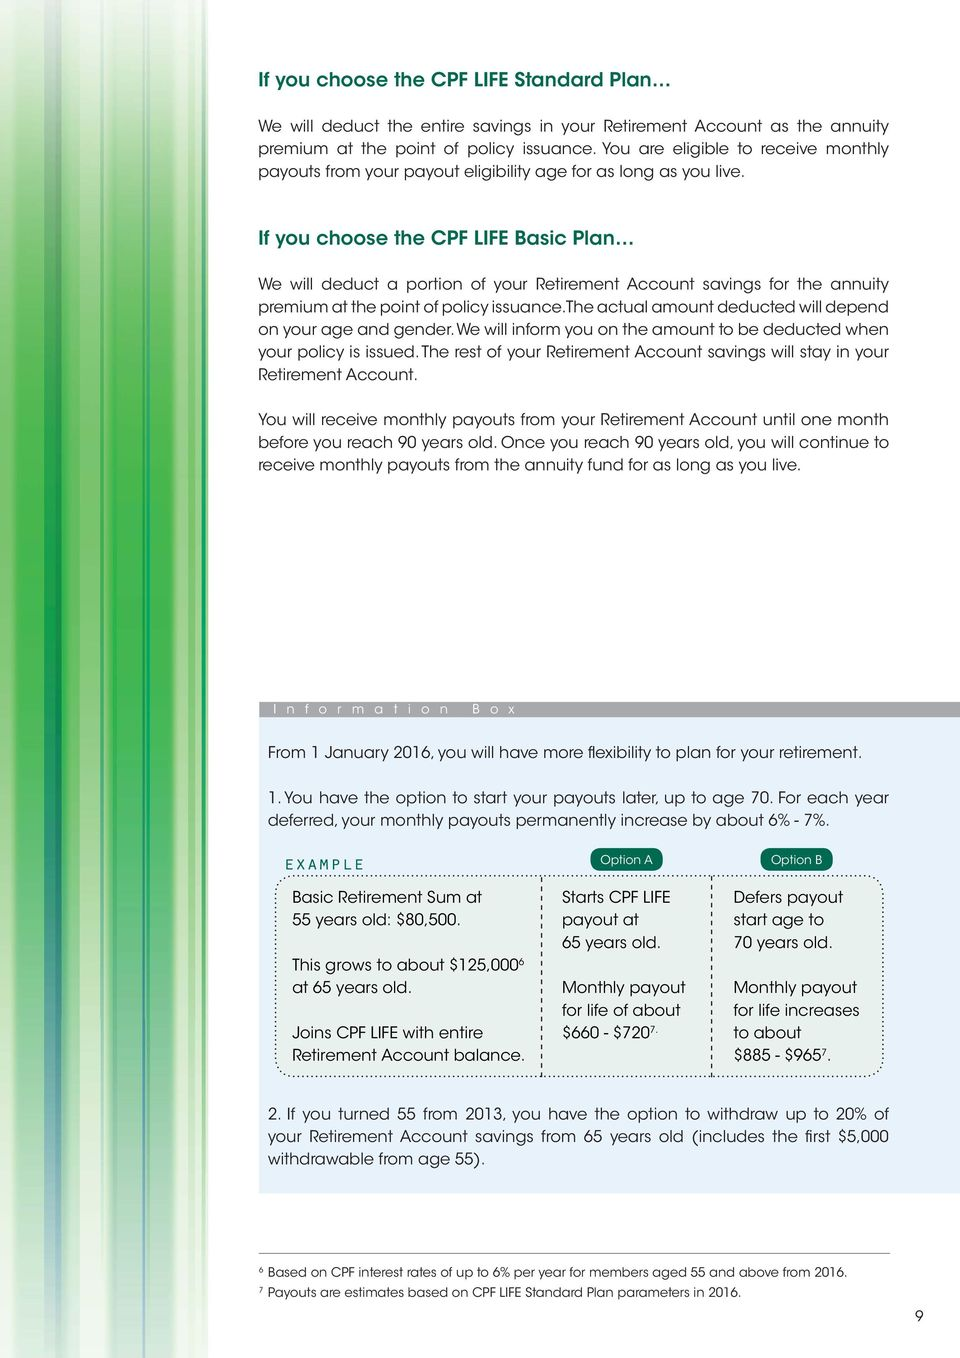 If you choose the CPF LIFE Basic Plan We will deduct a portion of your savings for the annuity premium at the point of policy issuance. The actual amount deducted will depend on your age and gender.